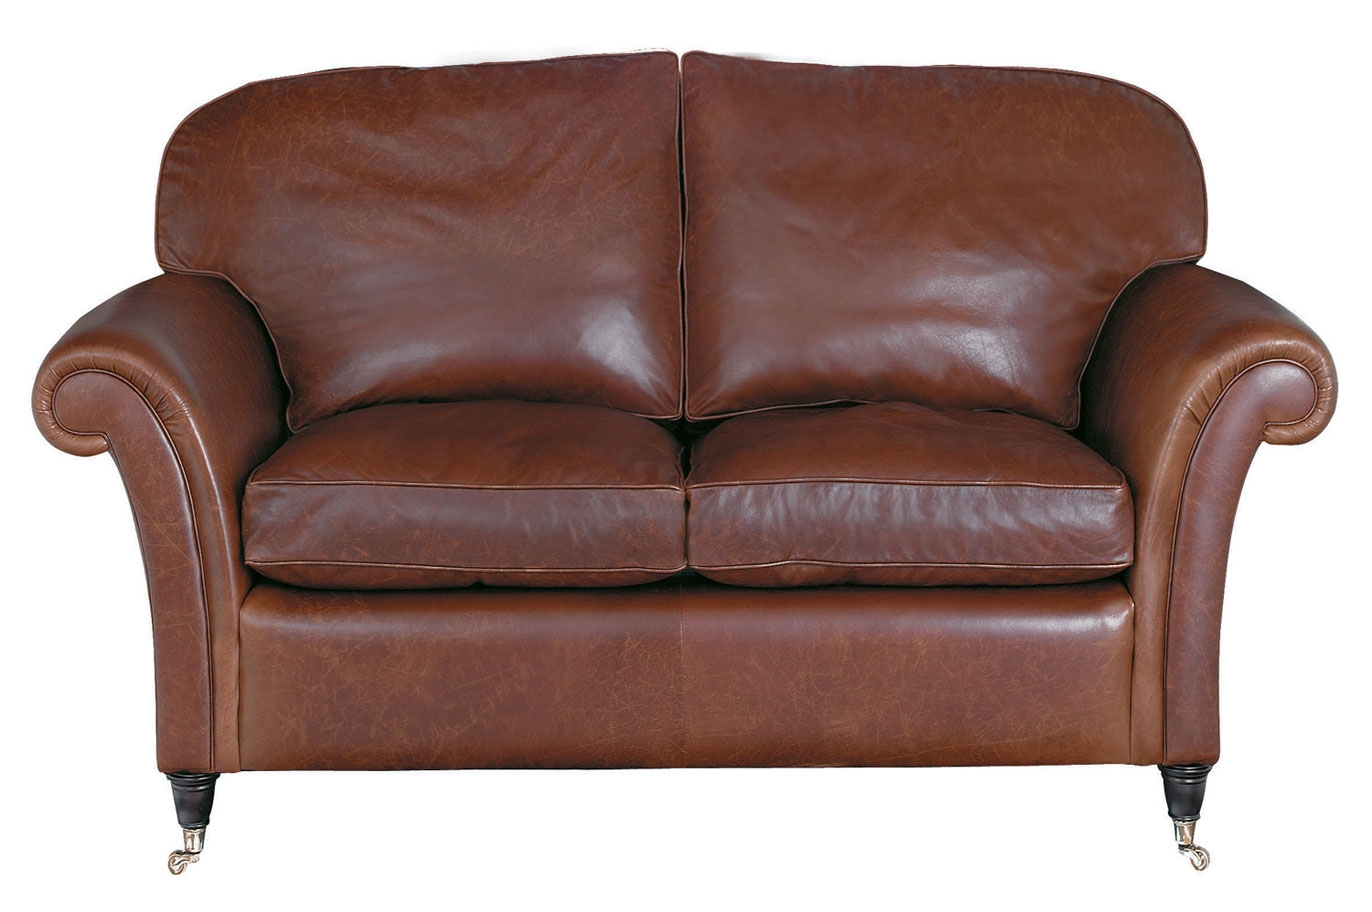 laura ashley burlington leather sofa oxblood chesterfield and armchair small home safe